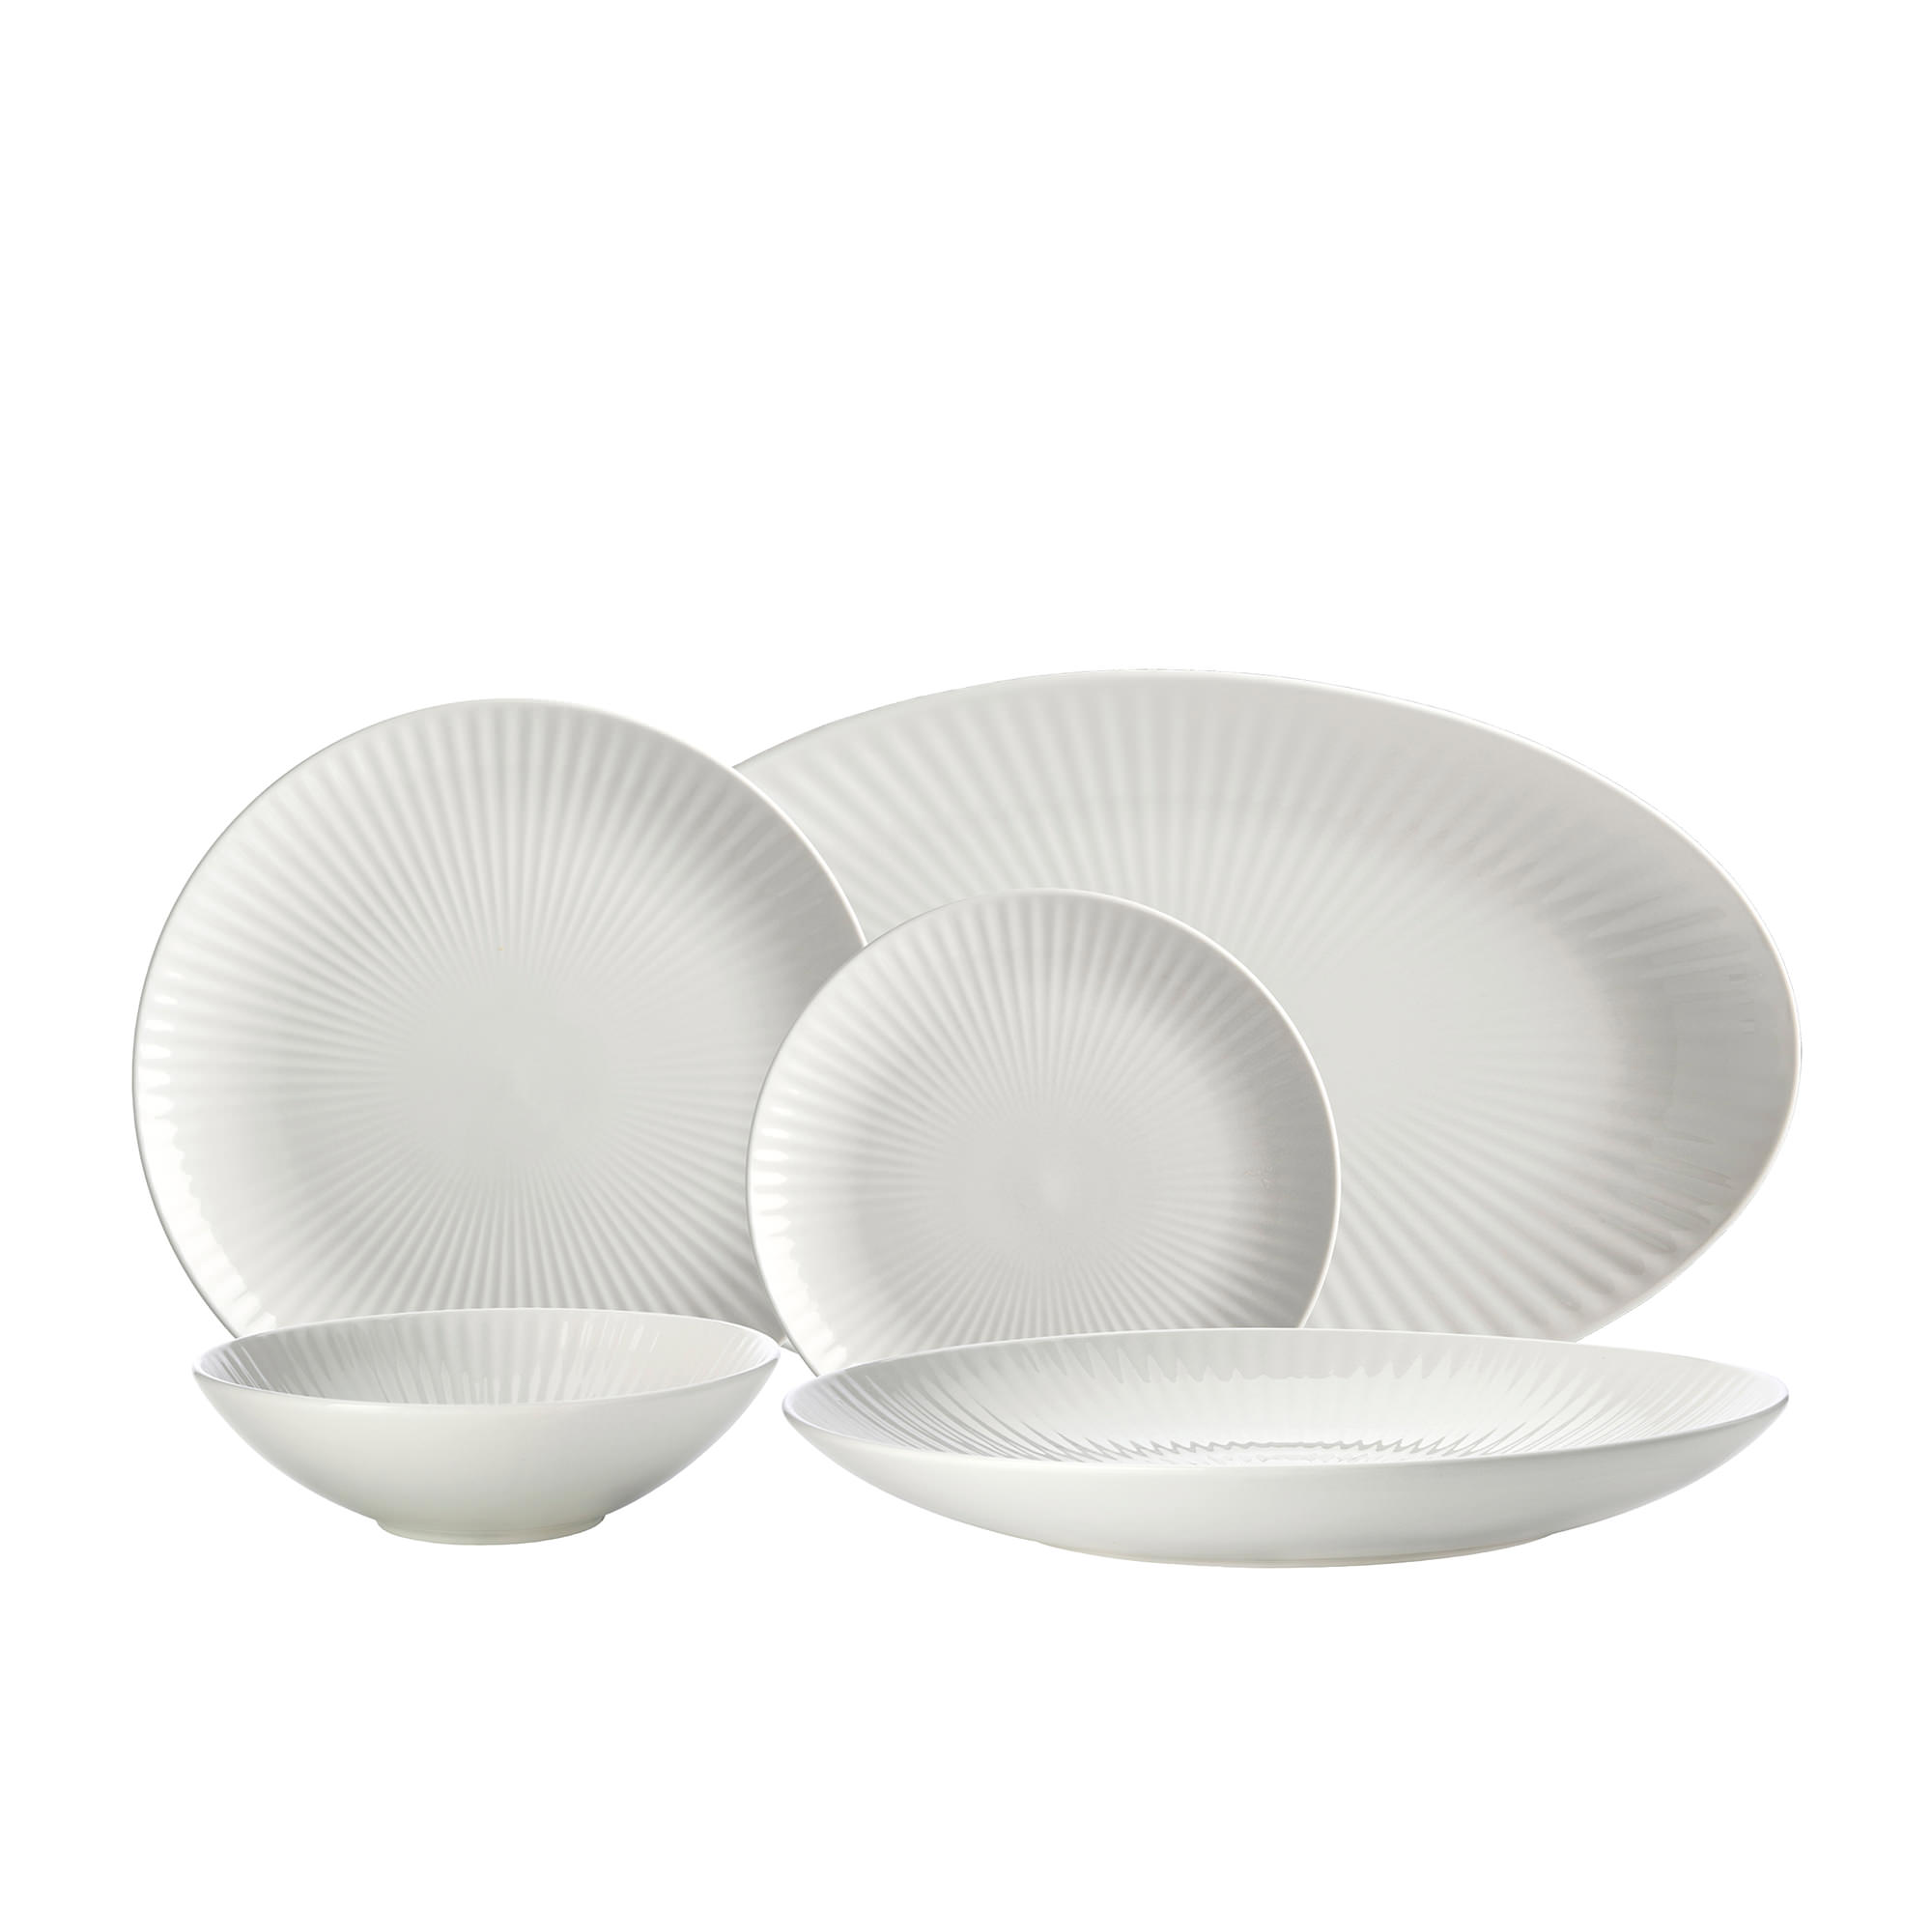 Maxwell & Williams Radiance 14pc Entertainer's Set White